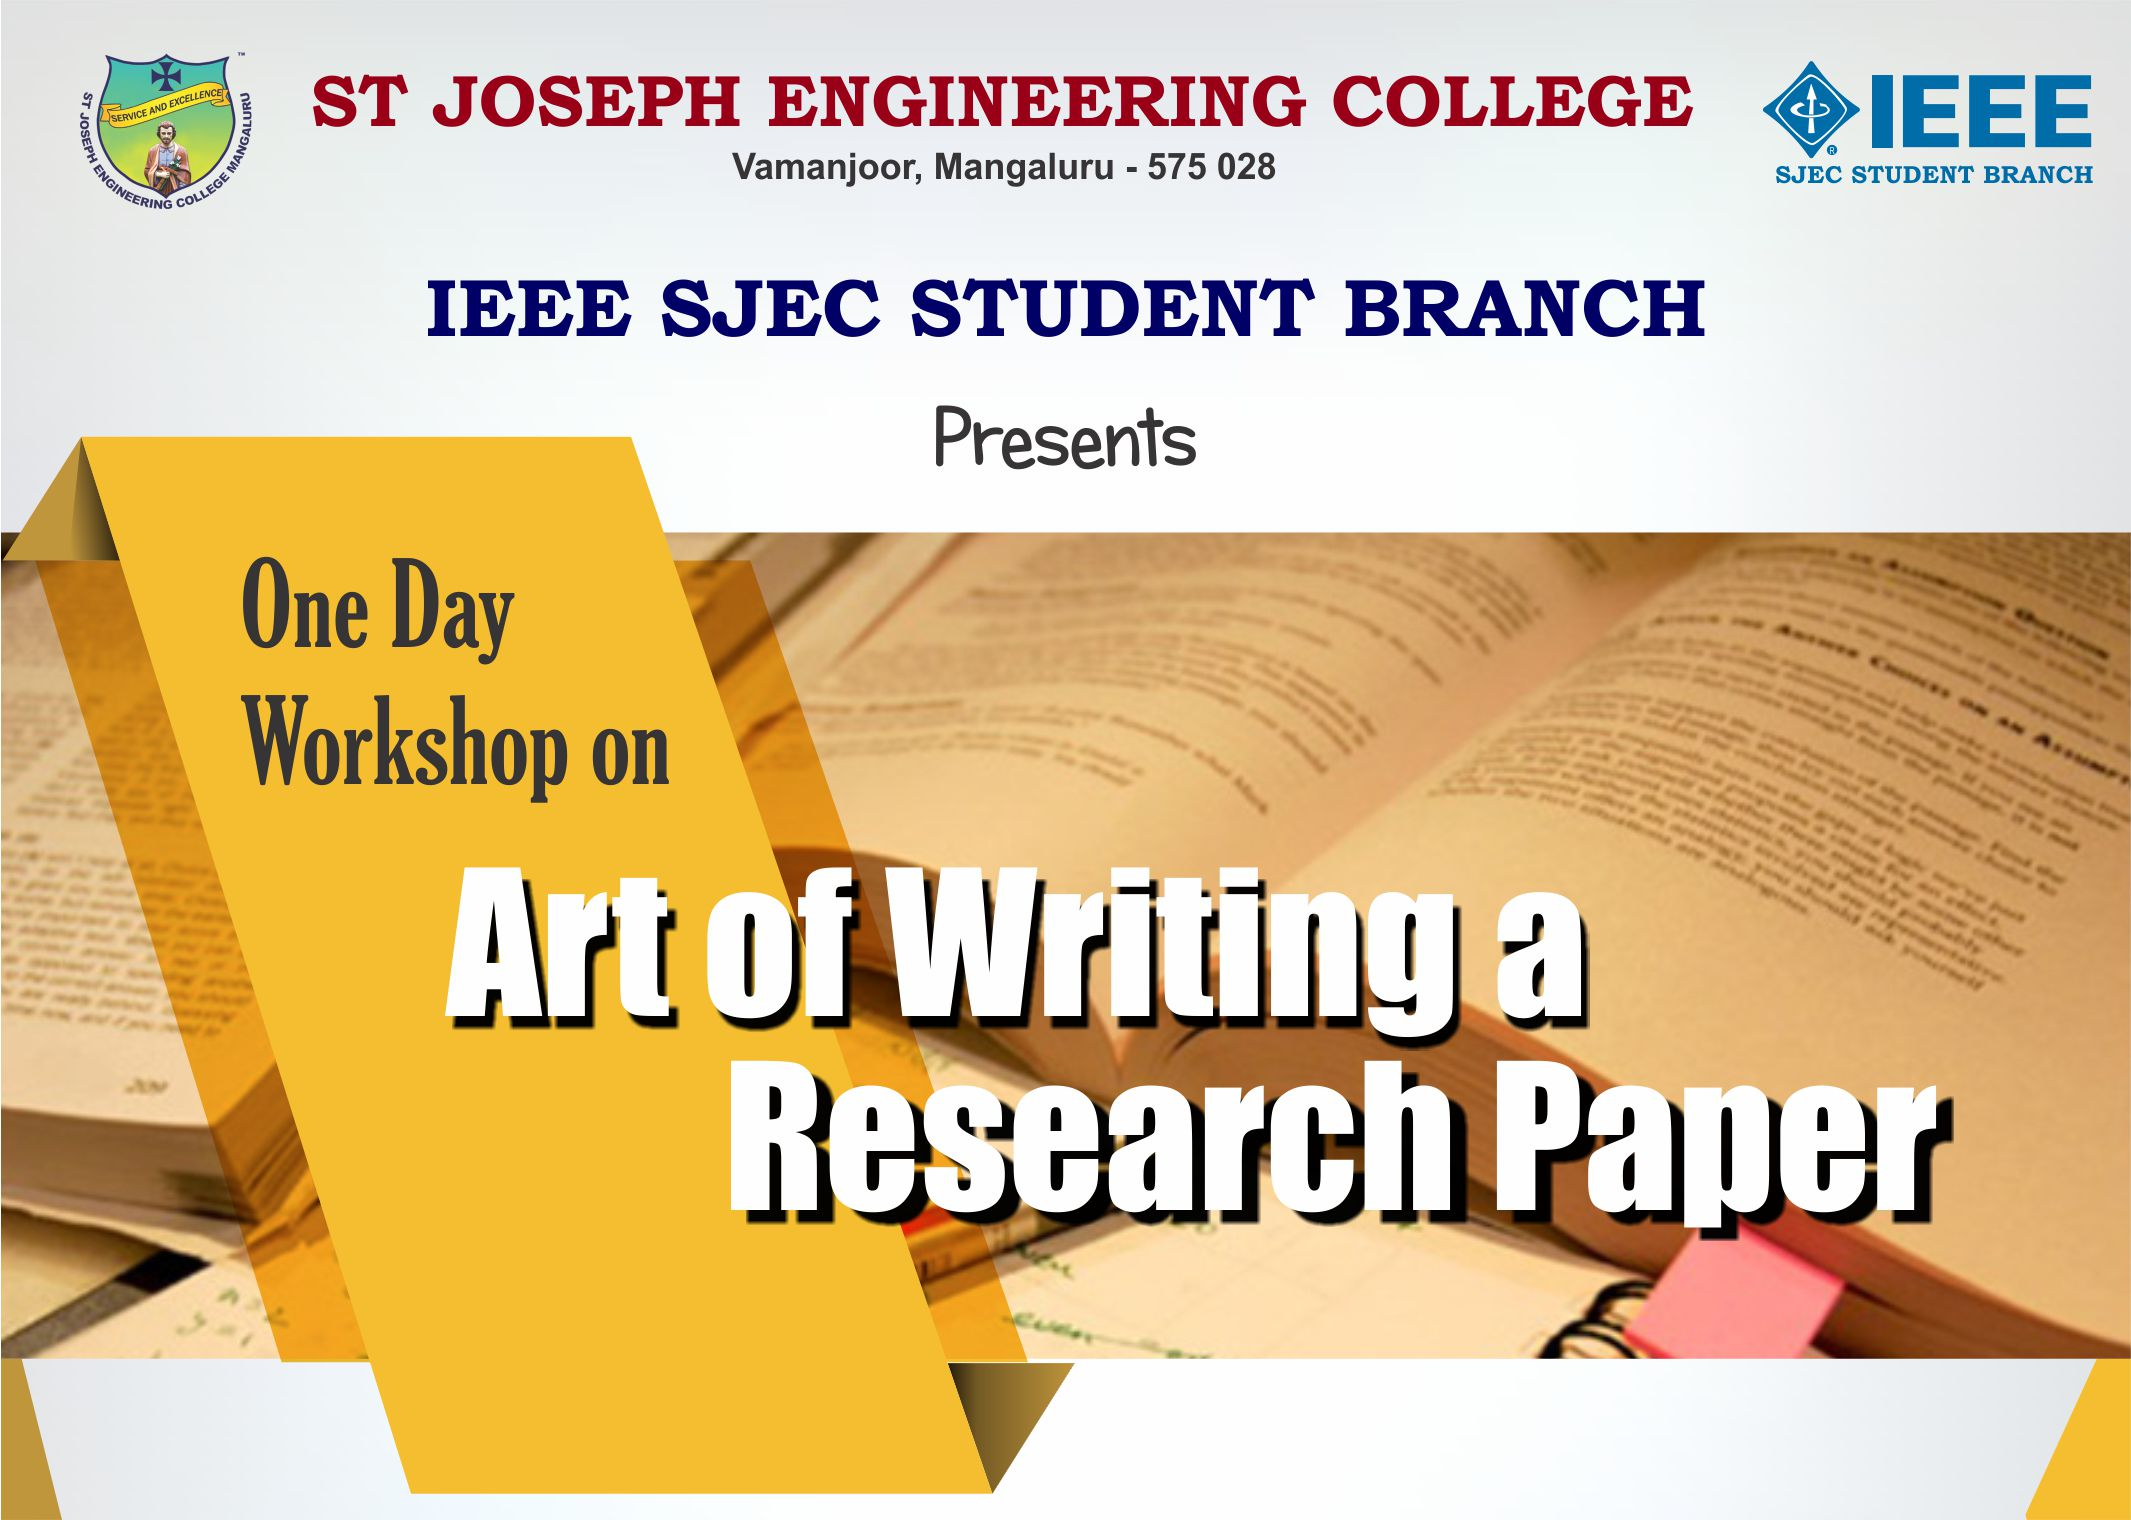 006 Workshop Banner Writing Of Research Fascinating Paper Sample Introduction Steps A Pdf Full